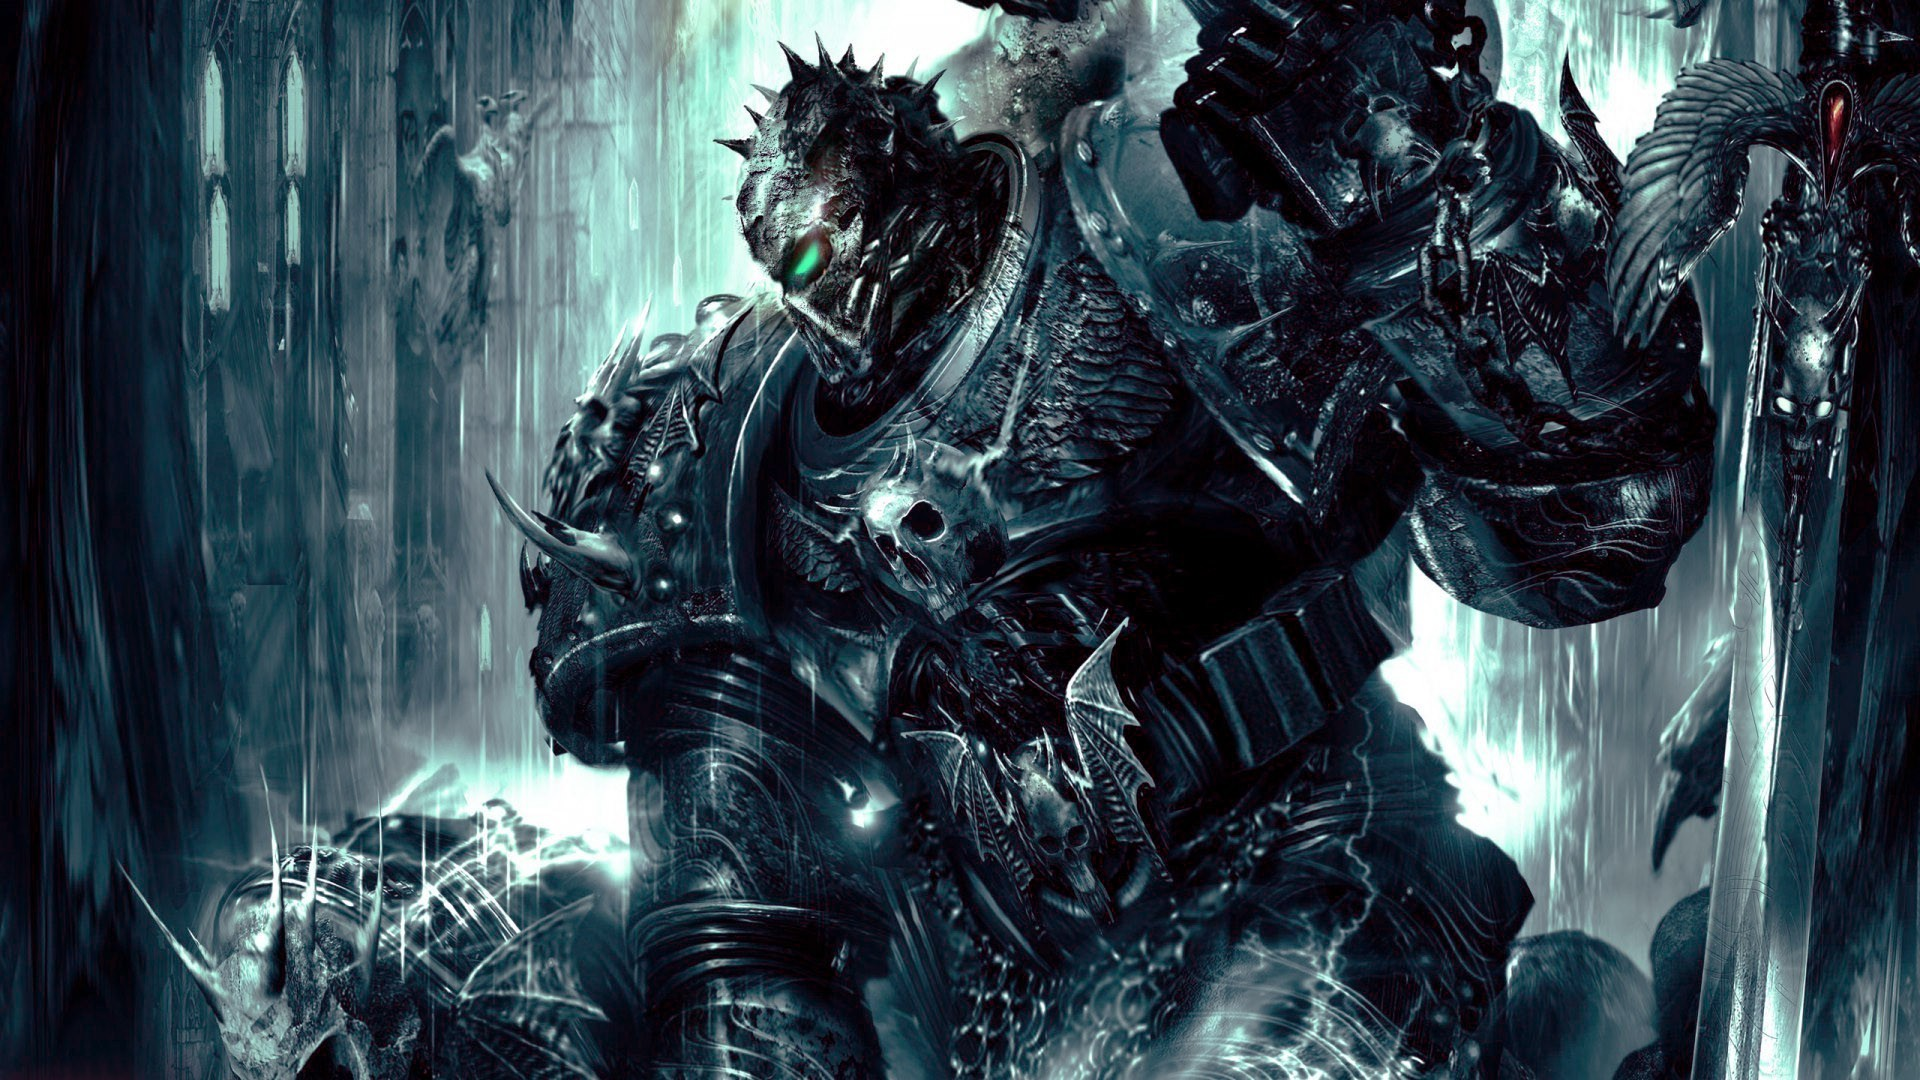 Chaos space marine wallpaper 64 images - Chaos wallpaper ...